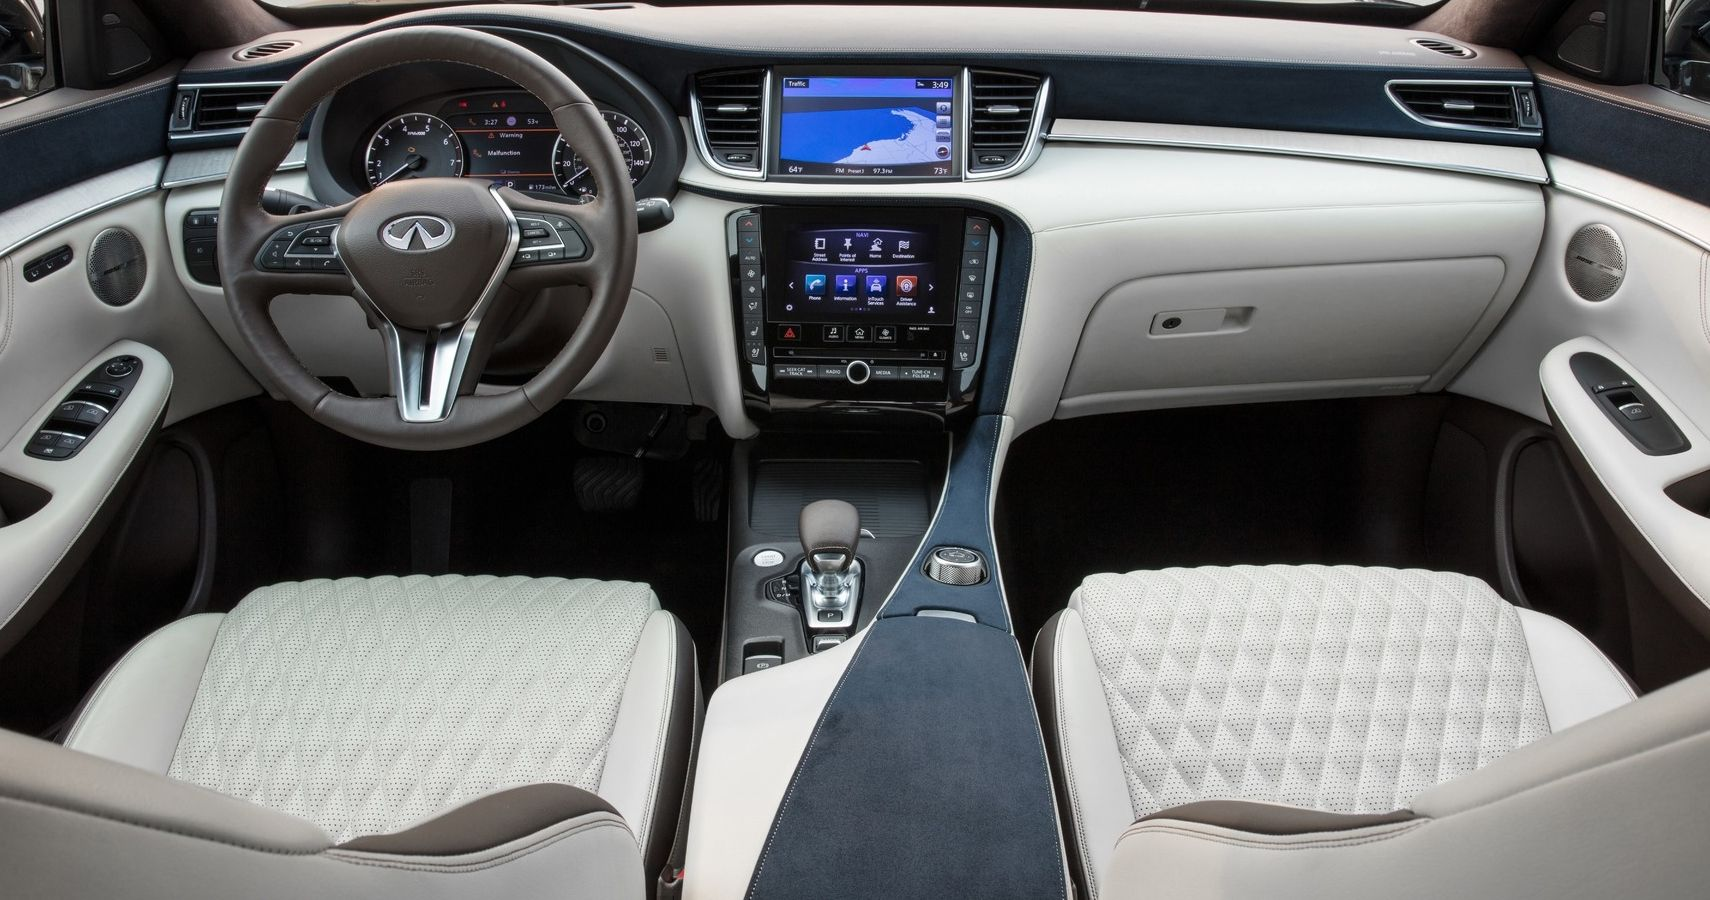 10 New Car Interior Upgrades You Must Buy For Your Old Car